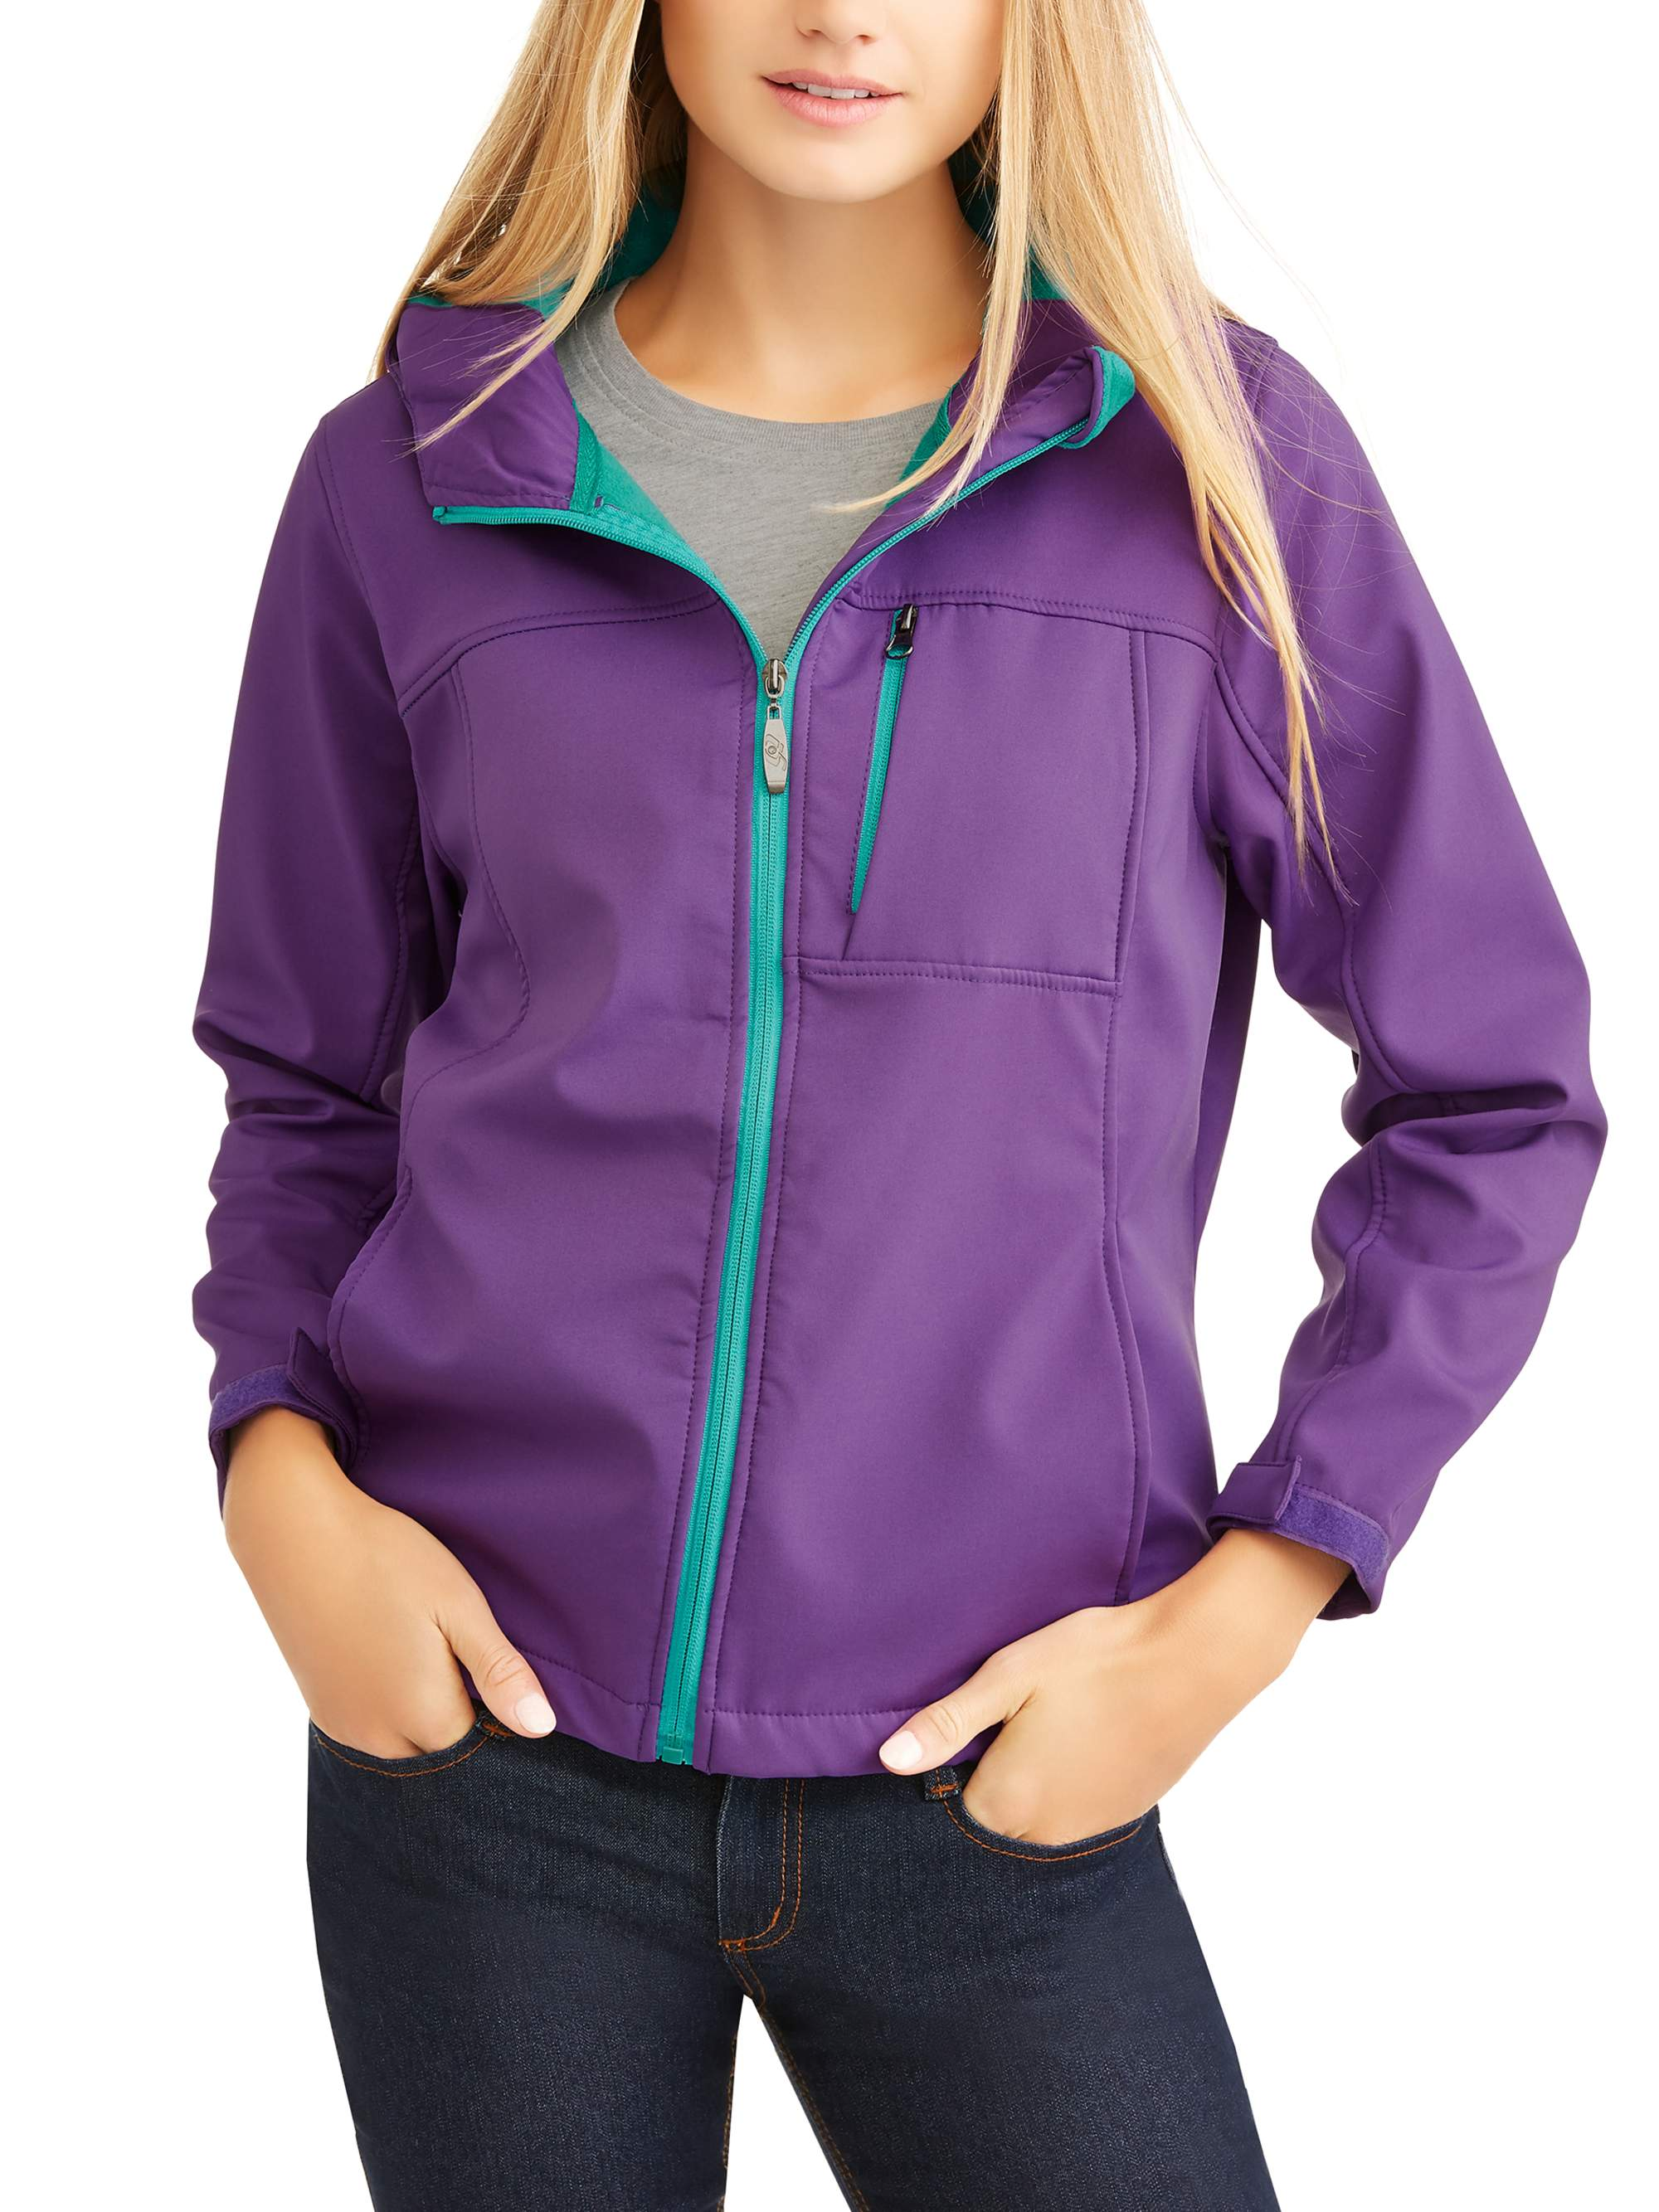 Women's Bonded Hooded Soft Shell Jacket W/Contrast Color Zipper